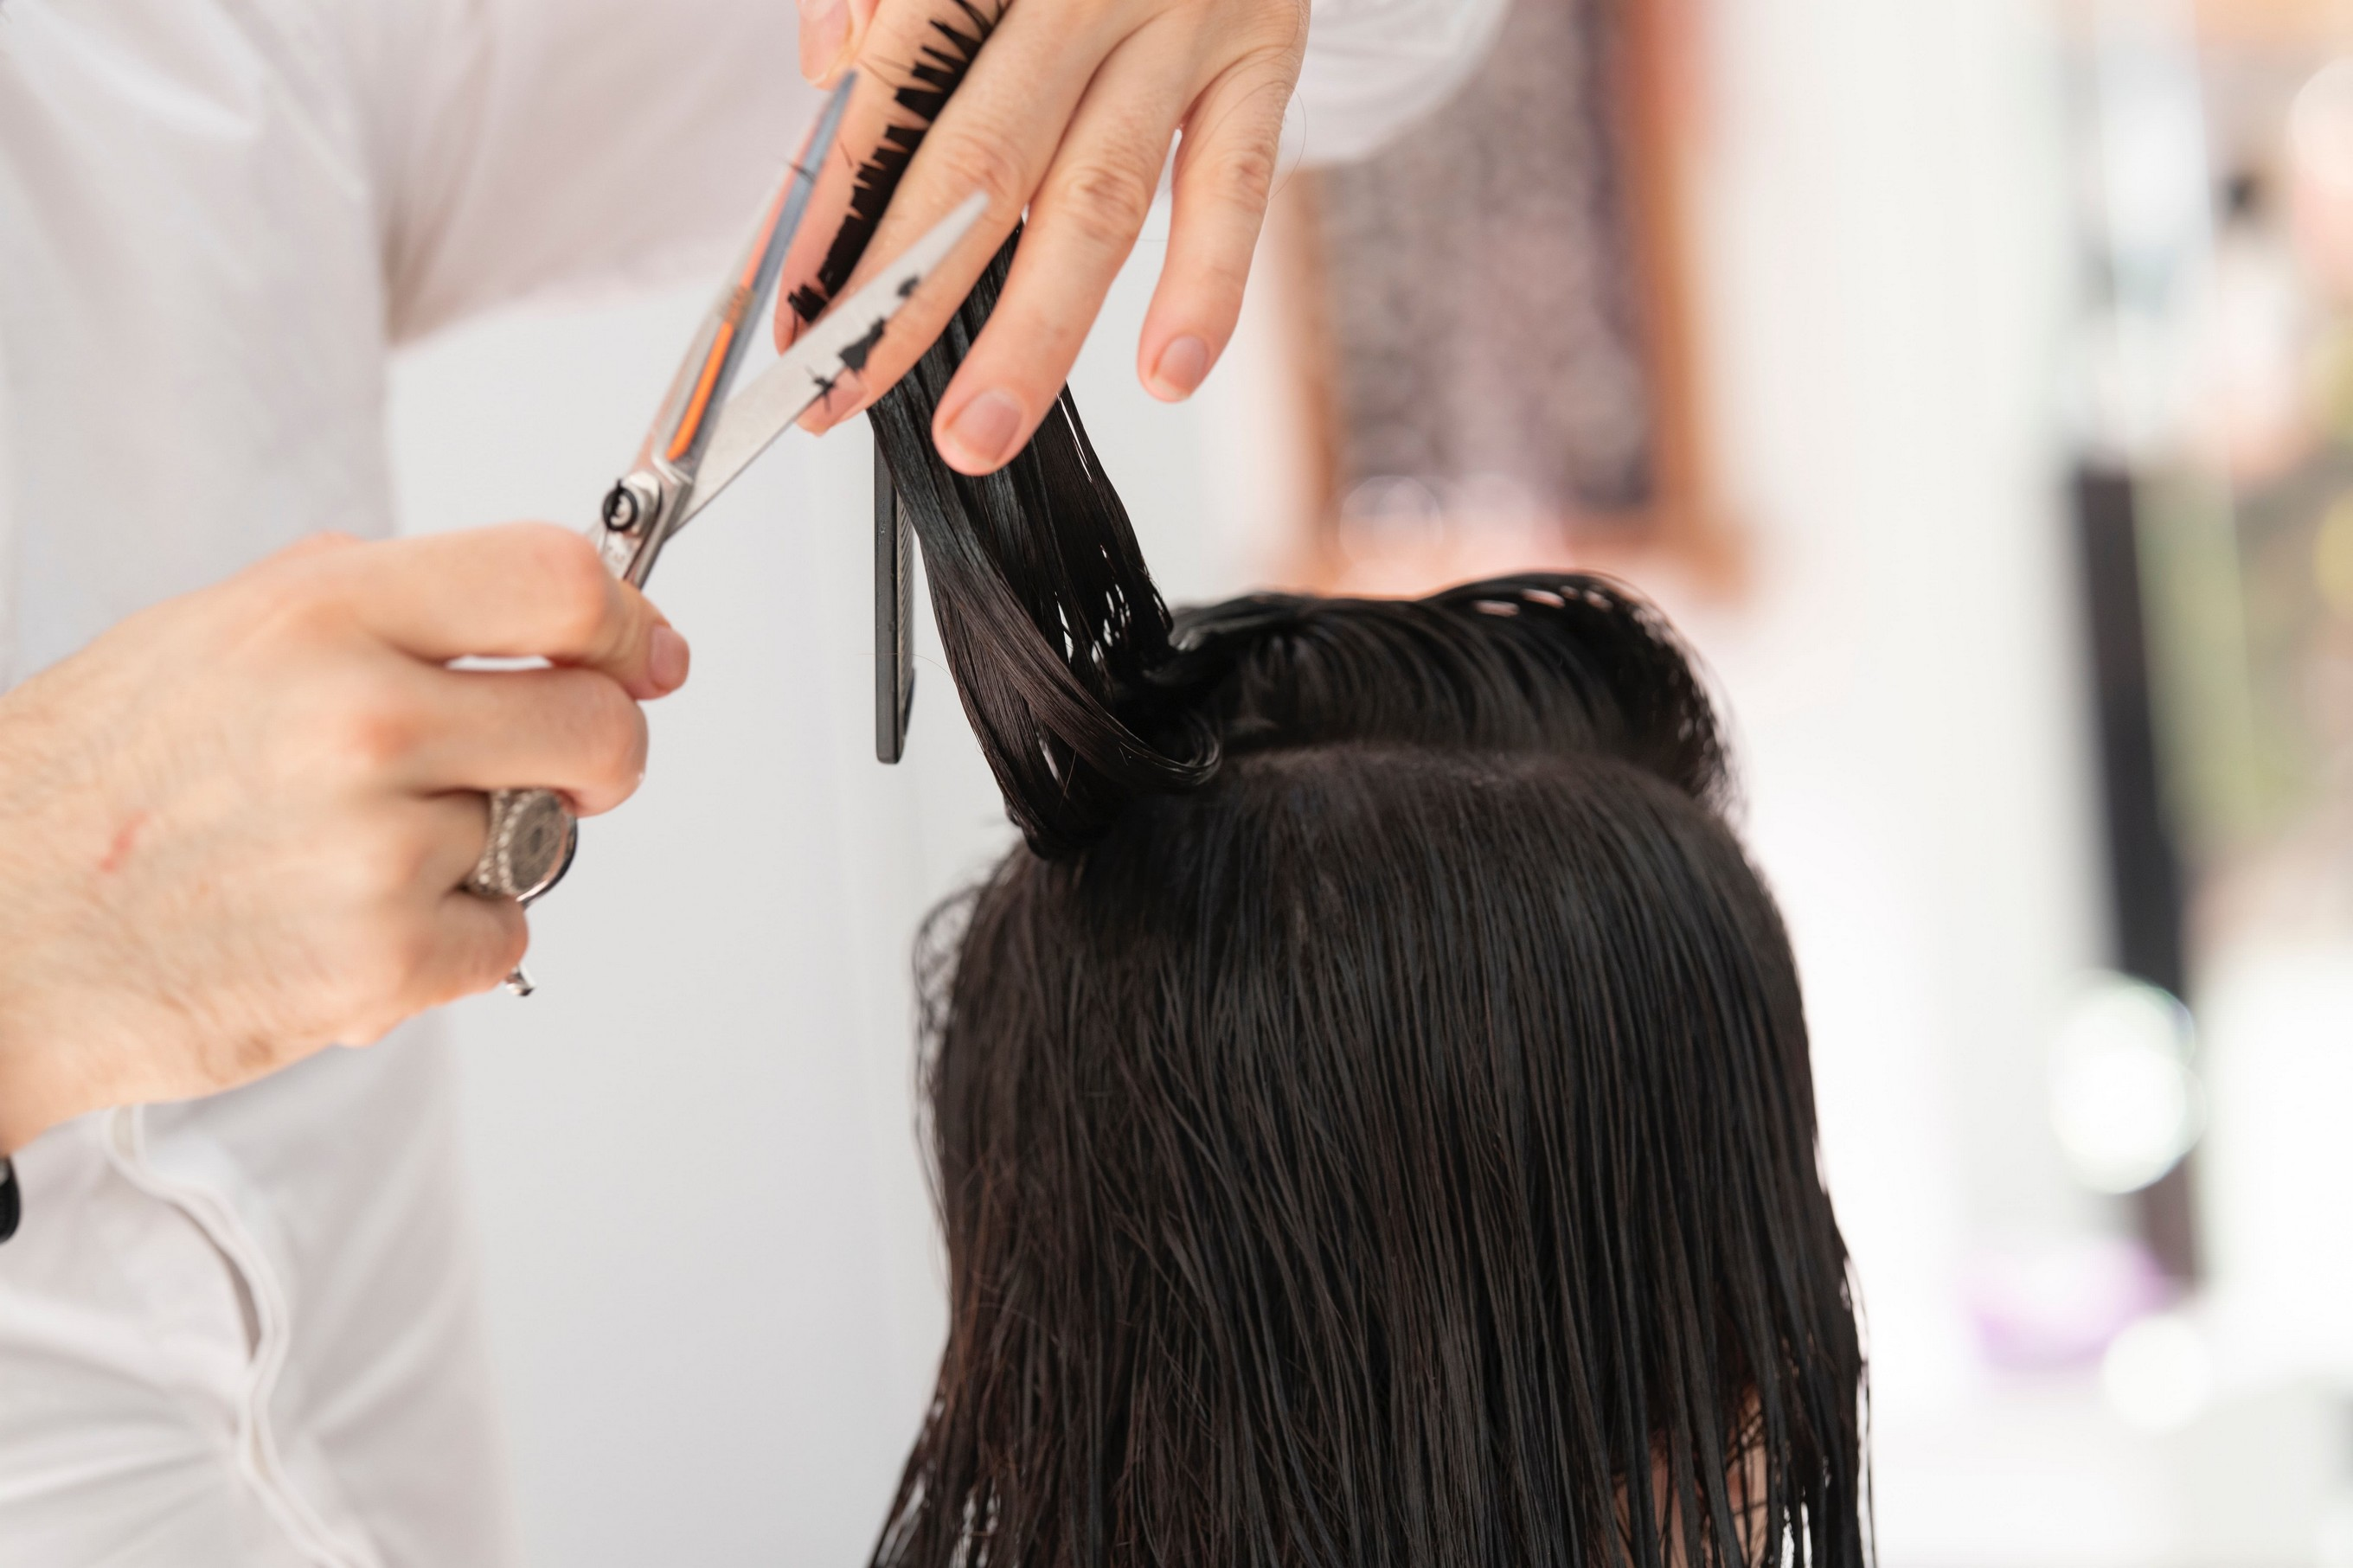 person cutting another individuals dark hair.